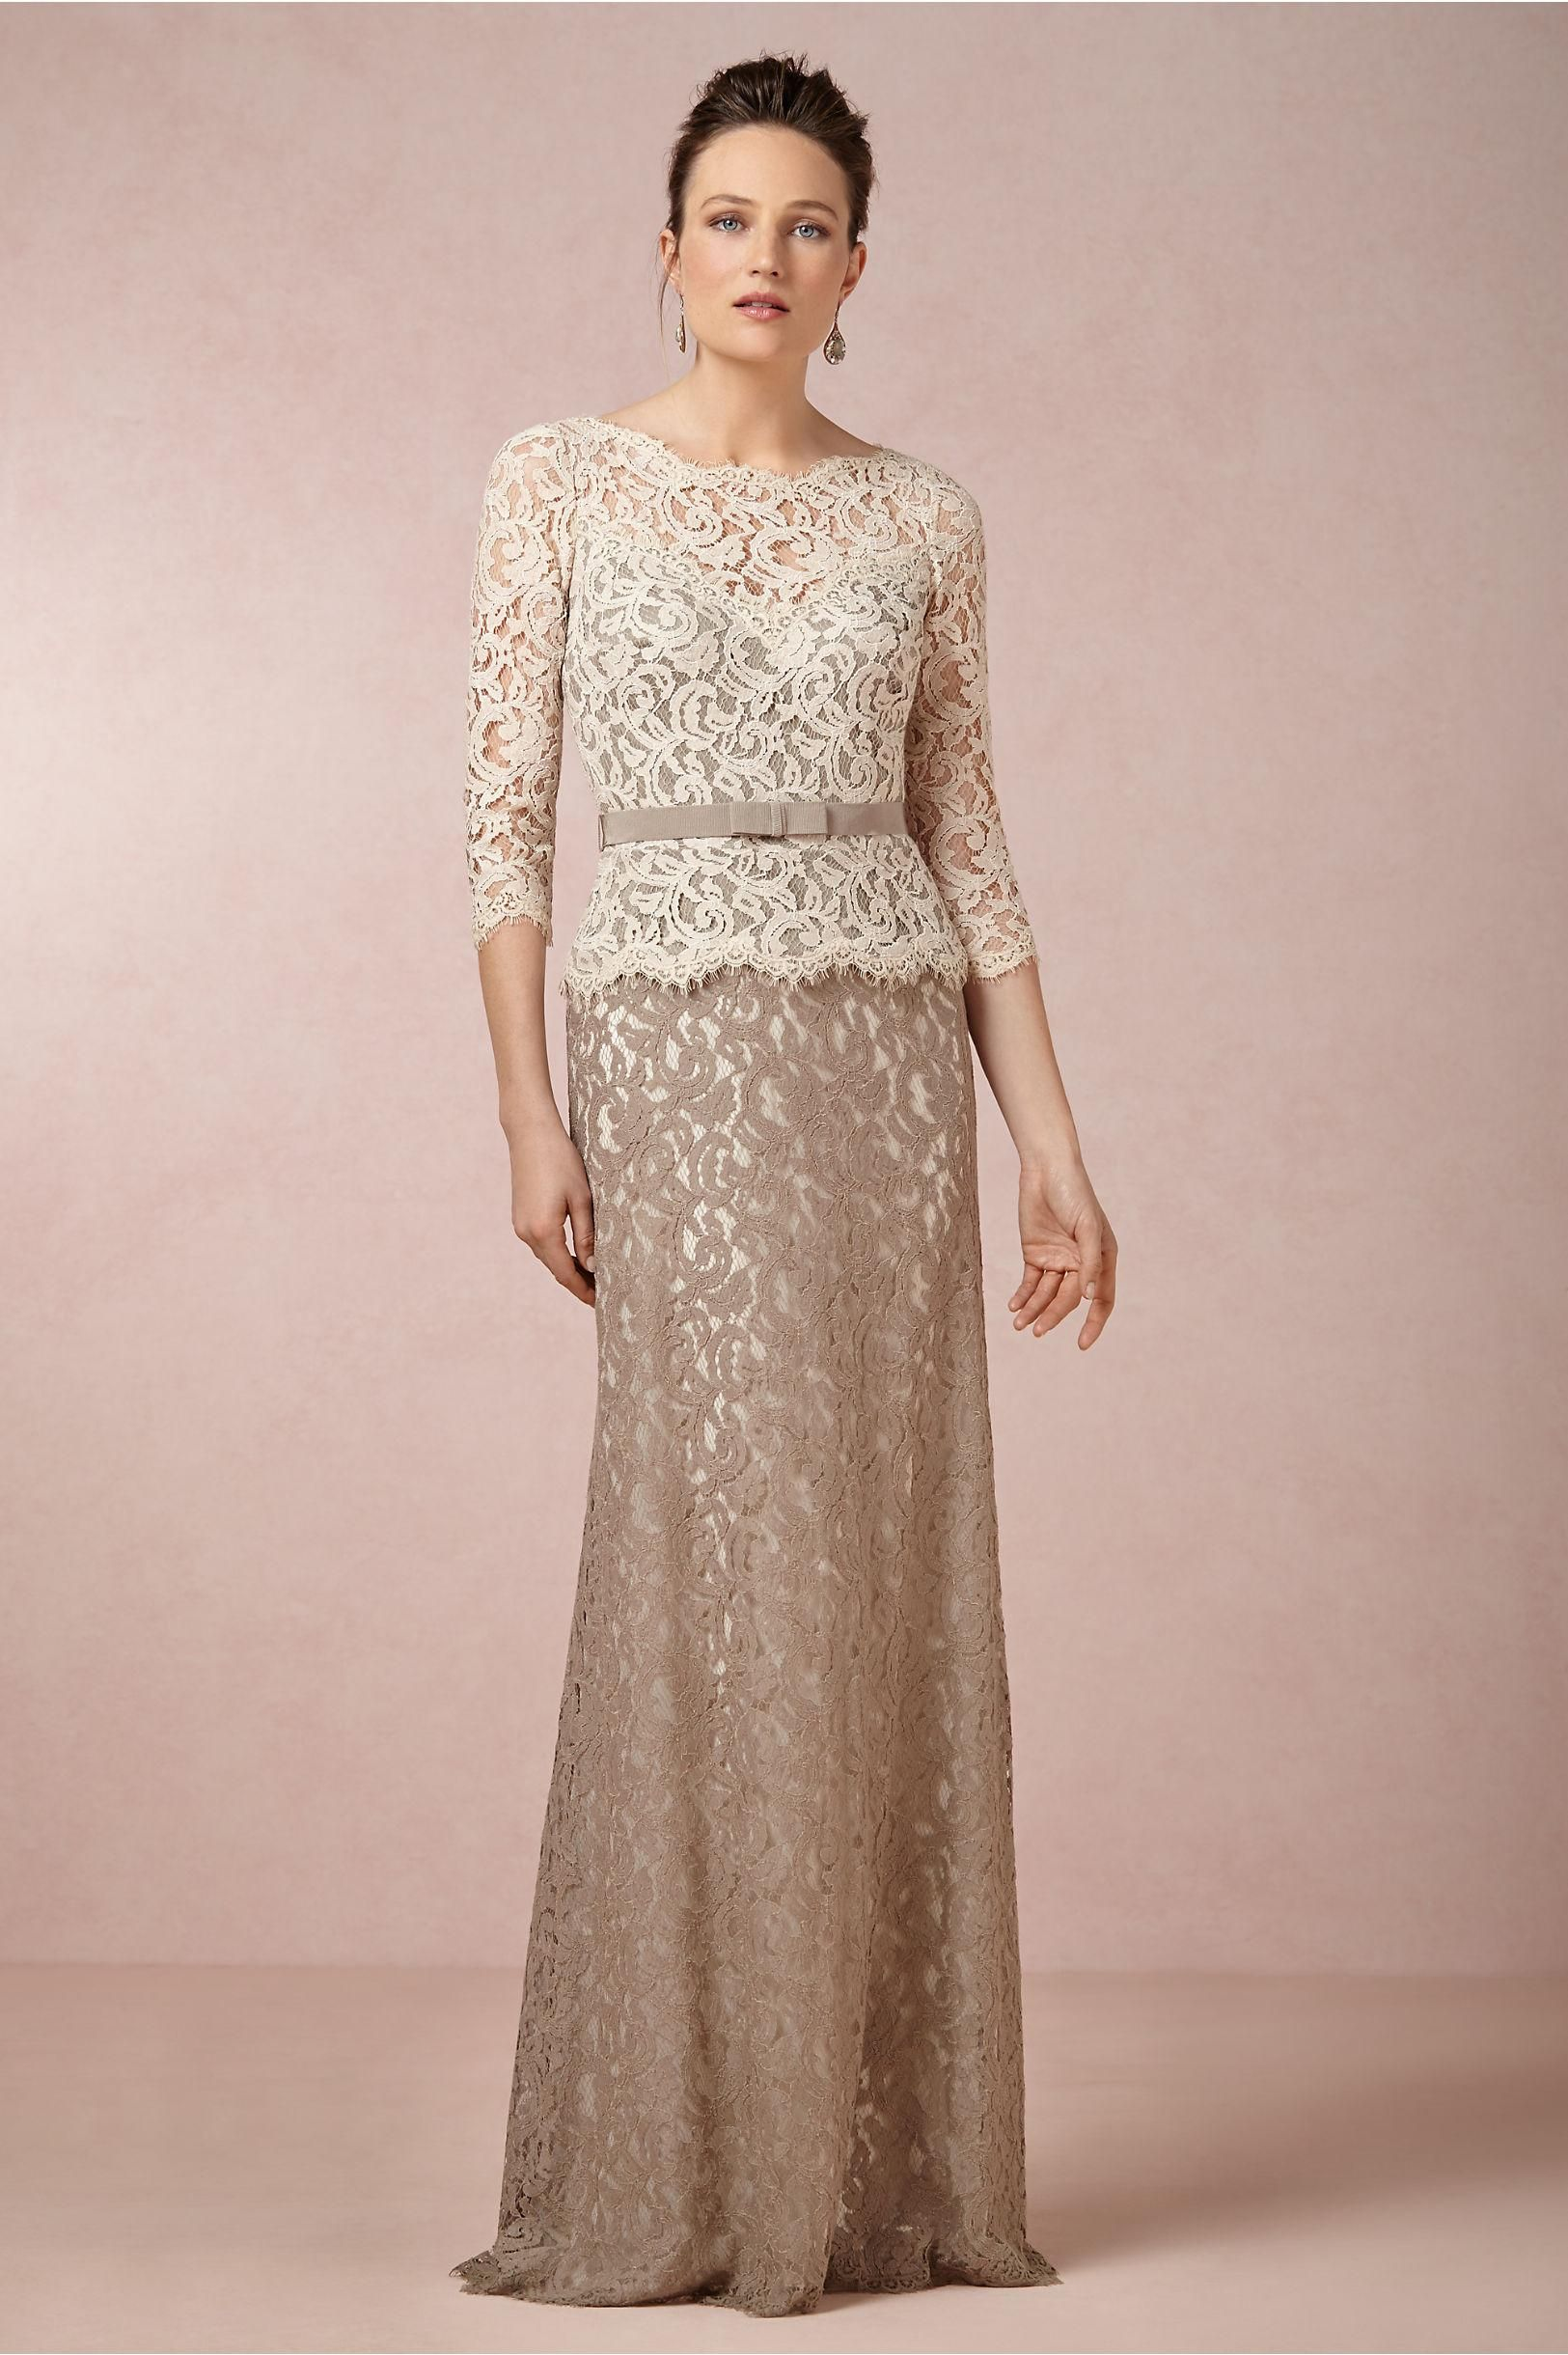 Mabel Mother of the Bride dress from BHLDN | Mother of the Bride ...